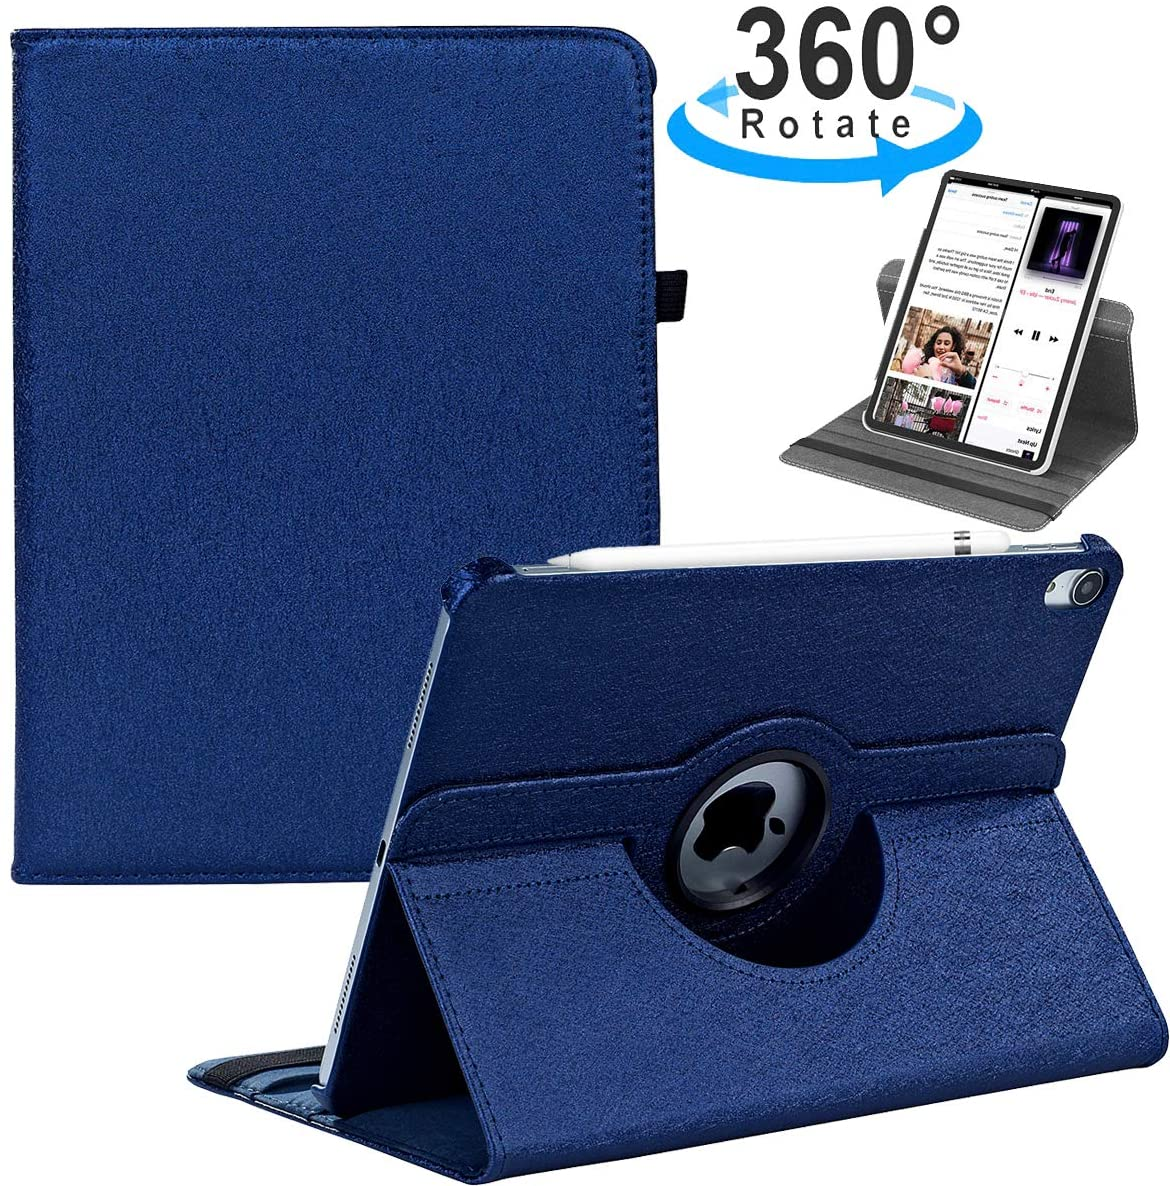 LRCXL Case for New iPad Pro 11 Inch 2018 - [Support Apple Pencil Charging] 360 Degree Rotating Multi-Angle Cover with Auto Sleep/Wake Function Swivel Case for Apple iPad Pro 11